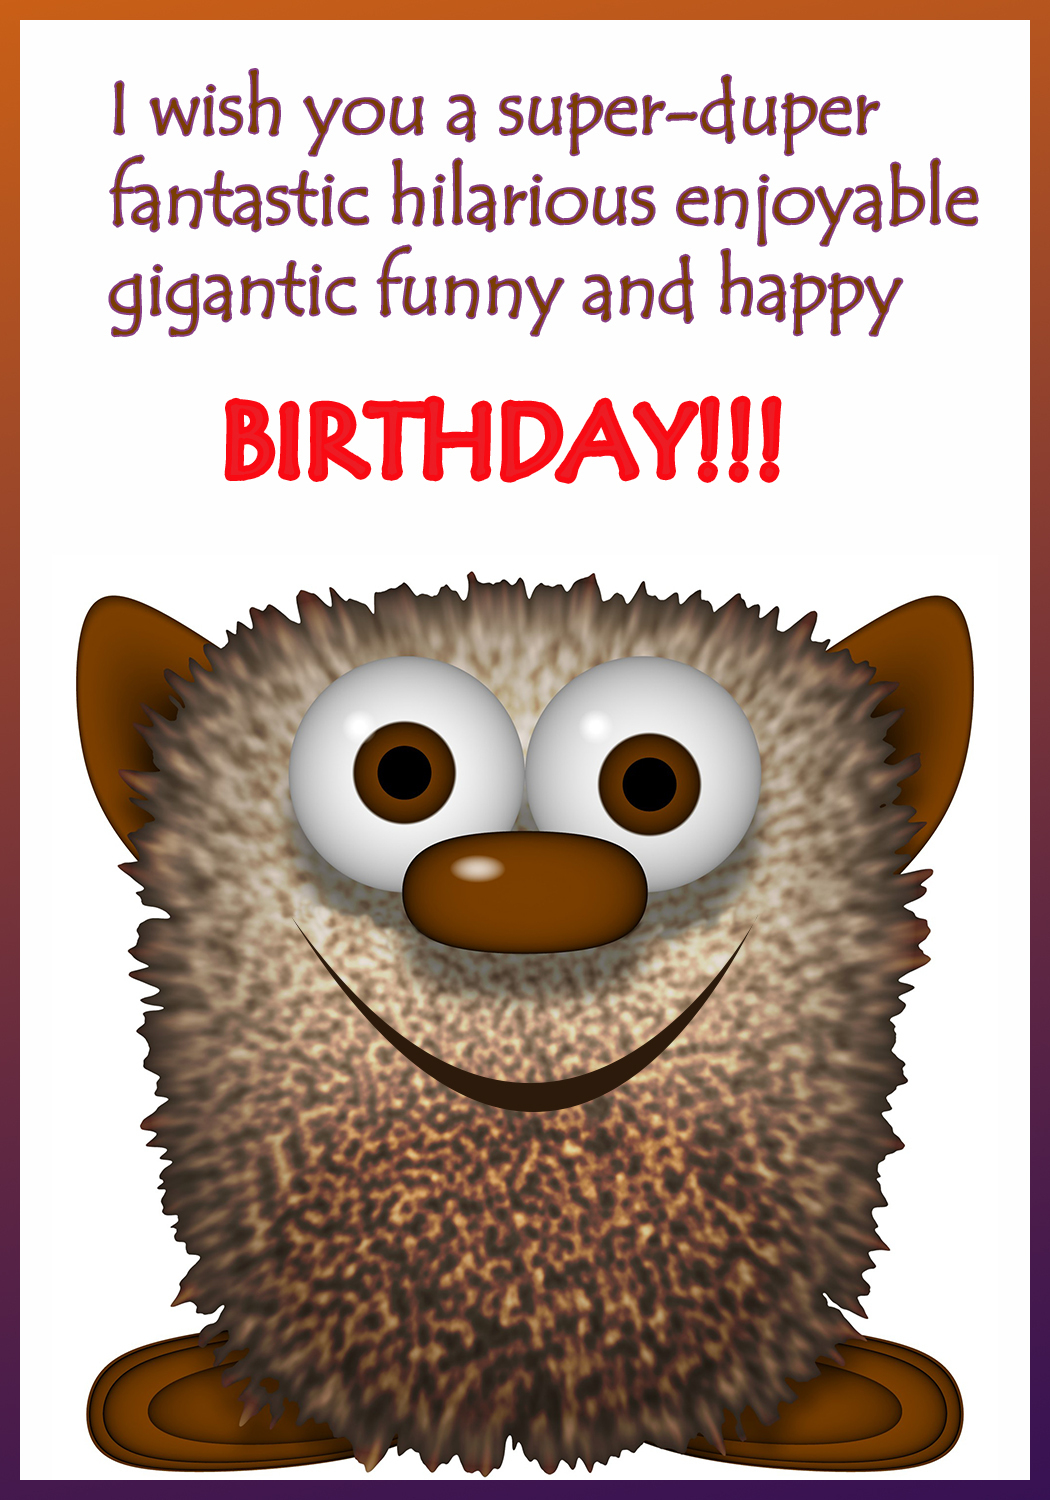 Funny Printable Birthday Cards - Free Printable Funny Birthday Cards For Dad